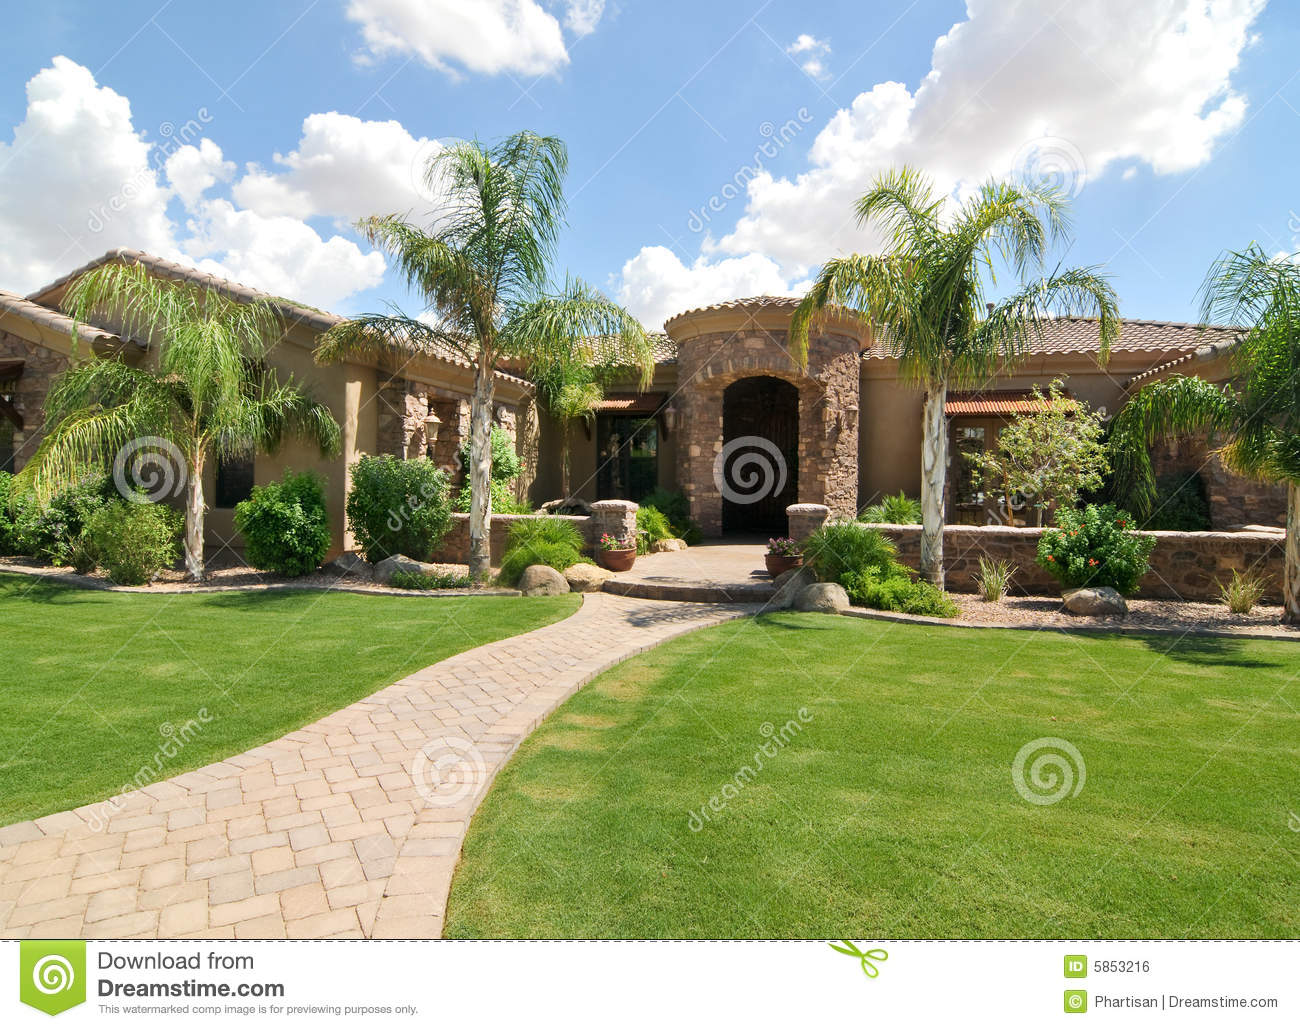 Luxury home royalty free stock image image 5853216 for Free luxury home images